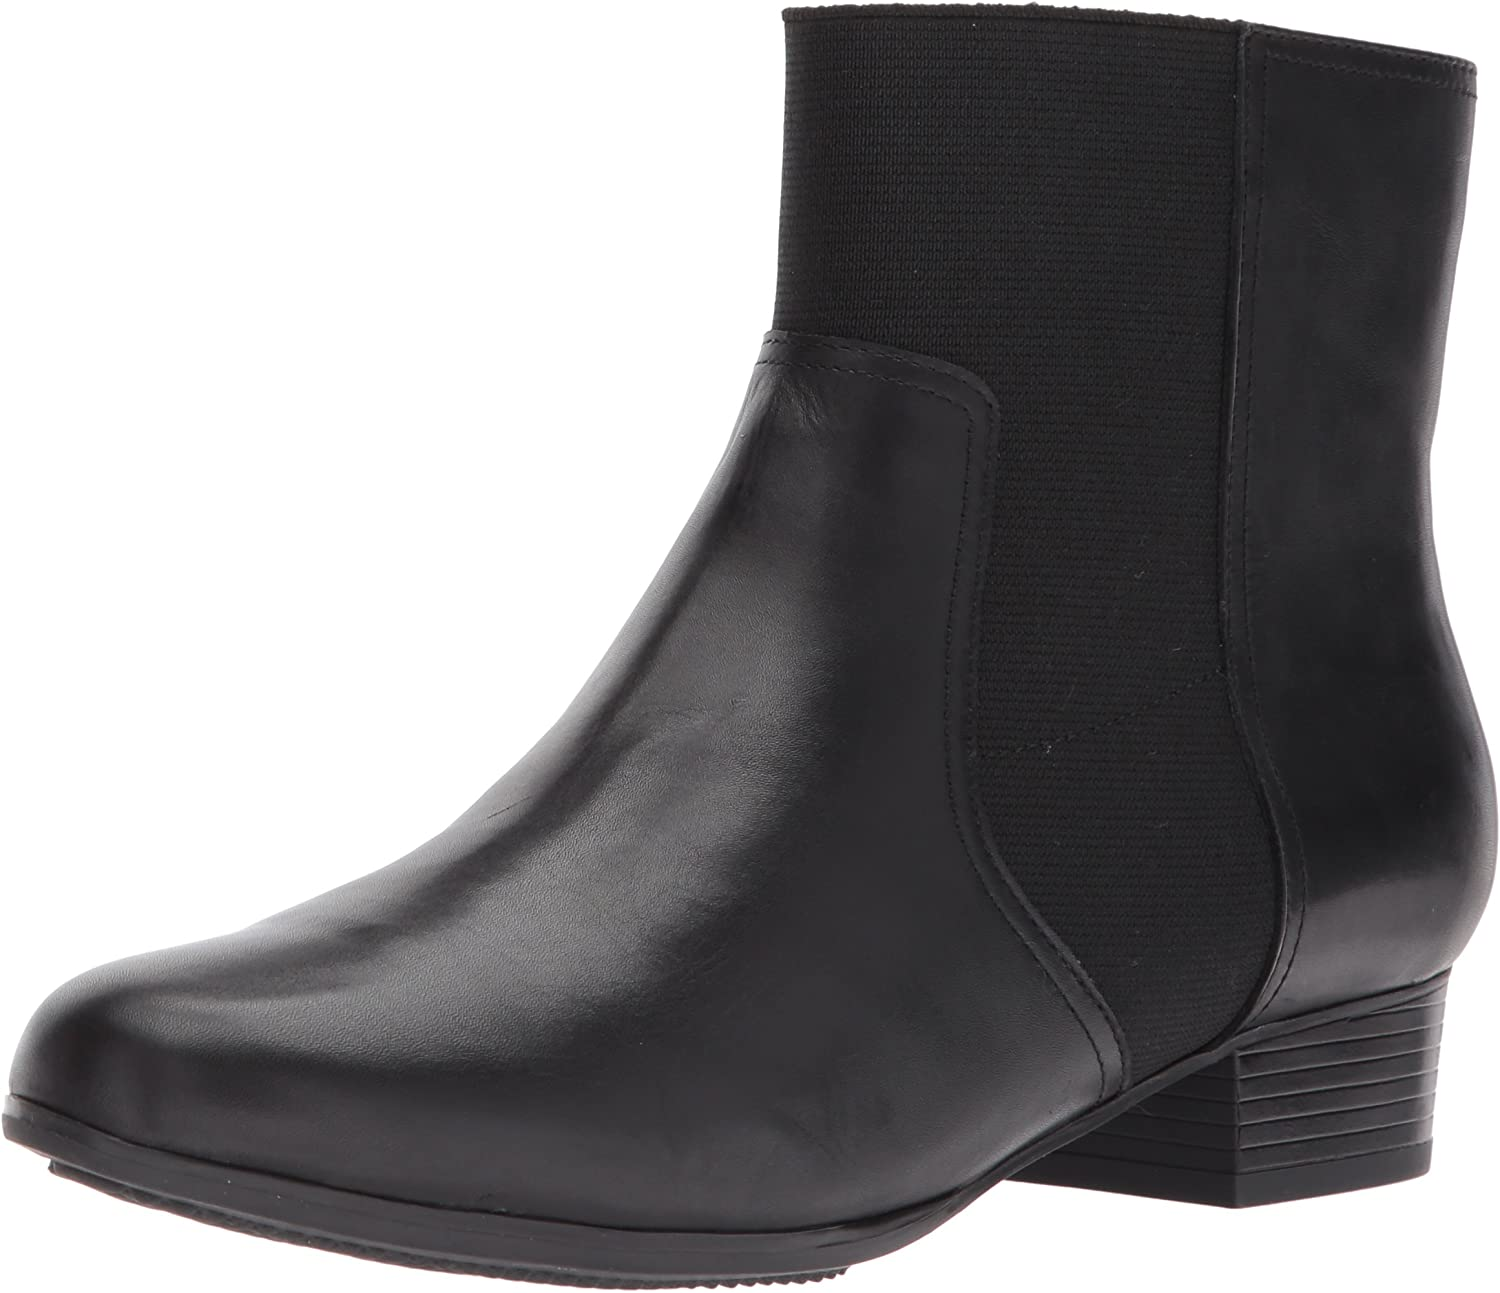 Tredters Womens Monte Ankle Bootie